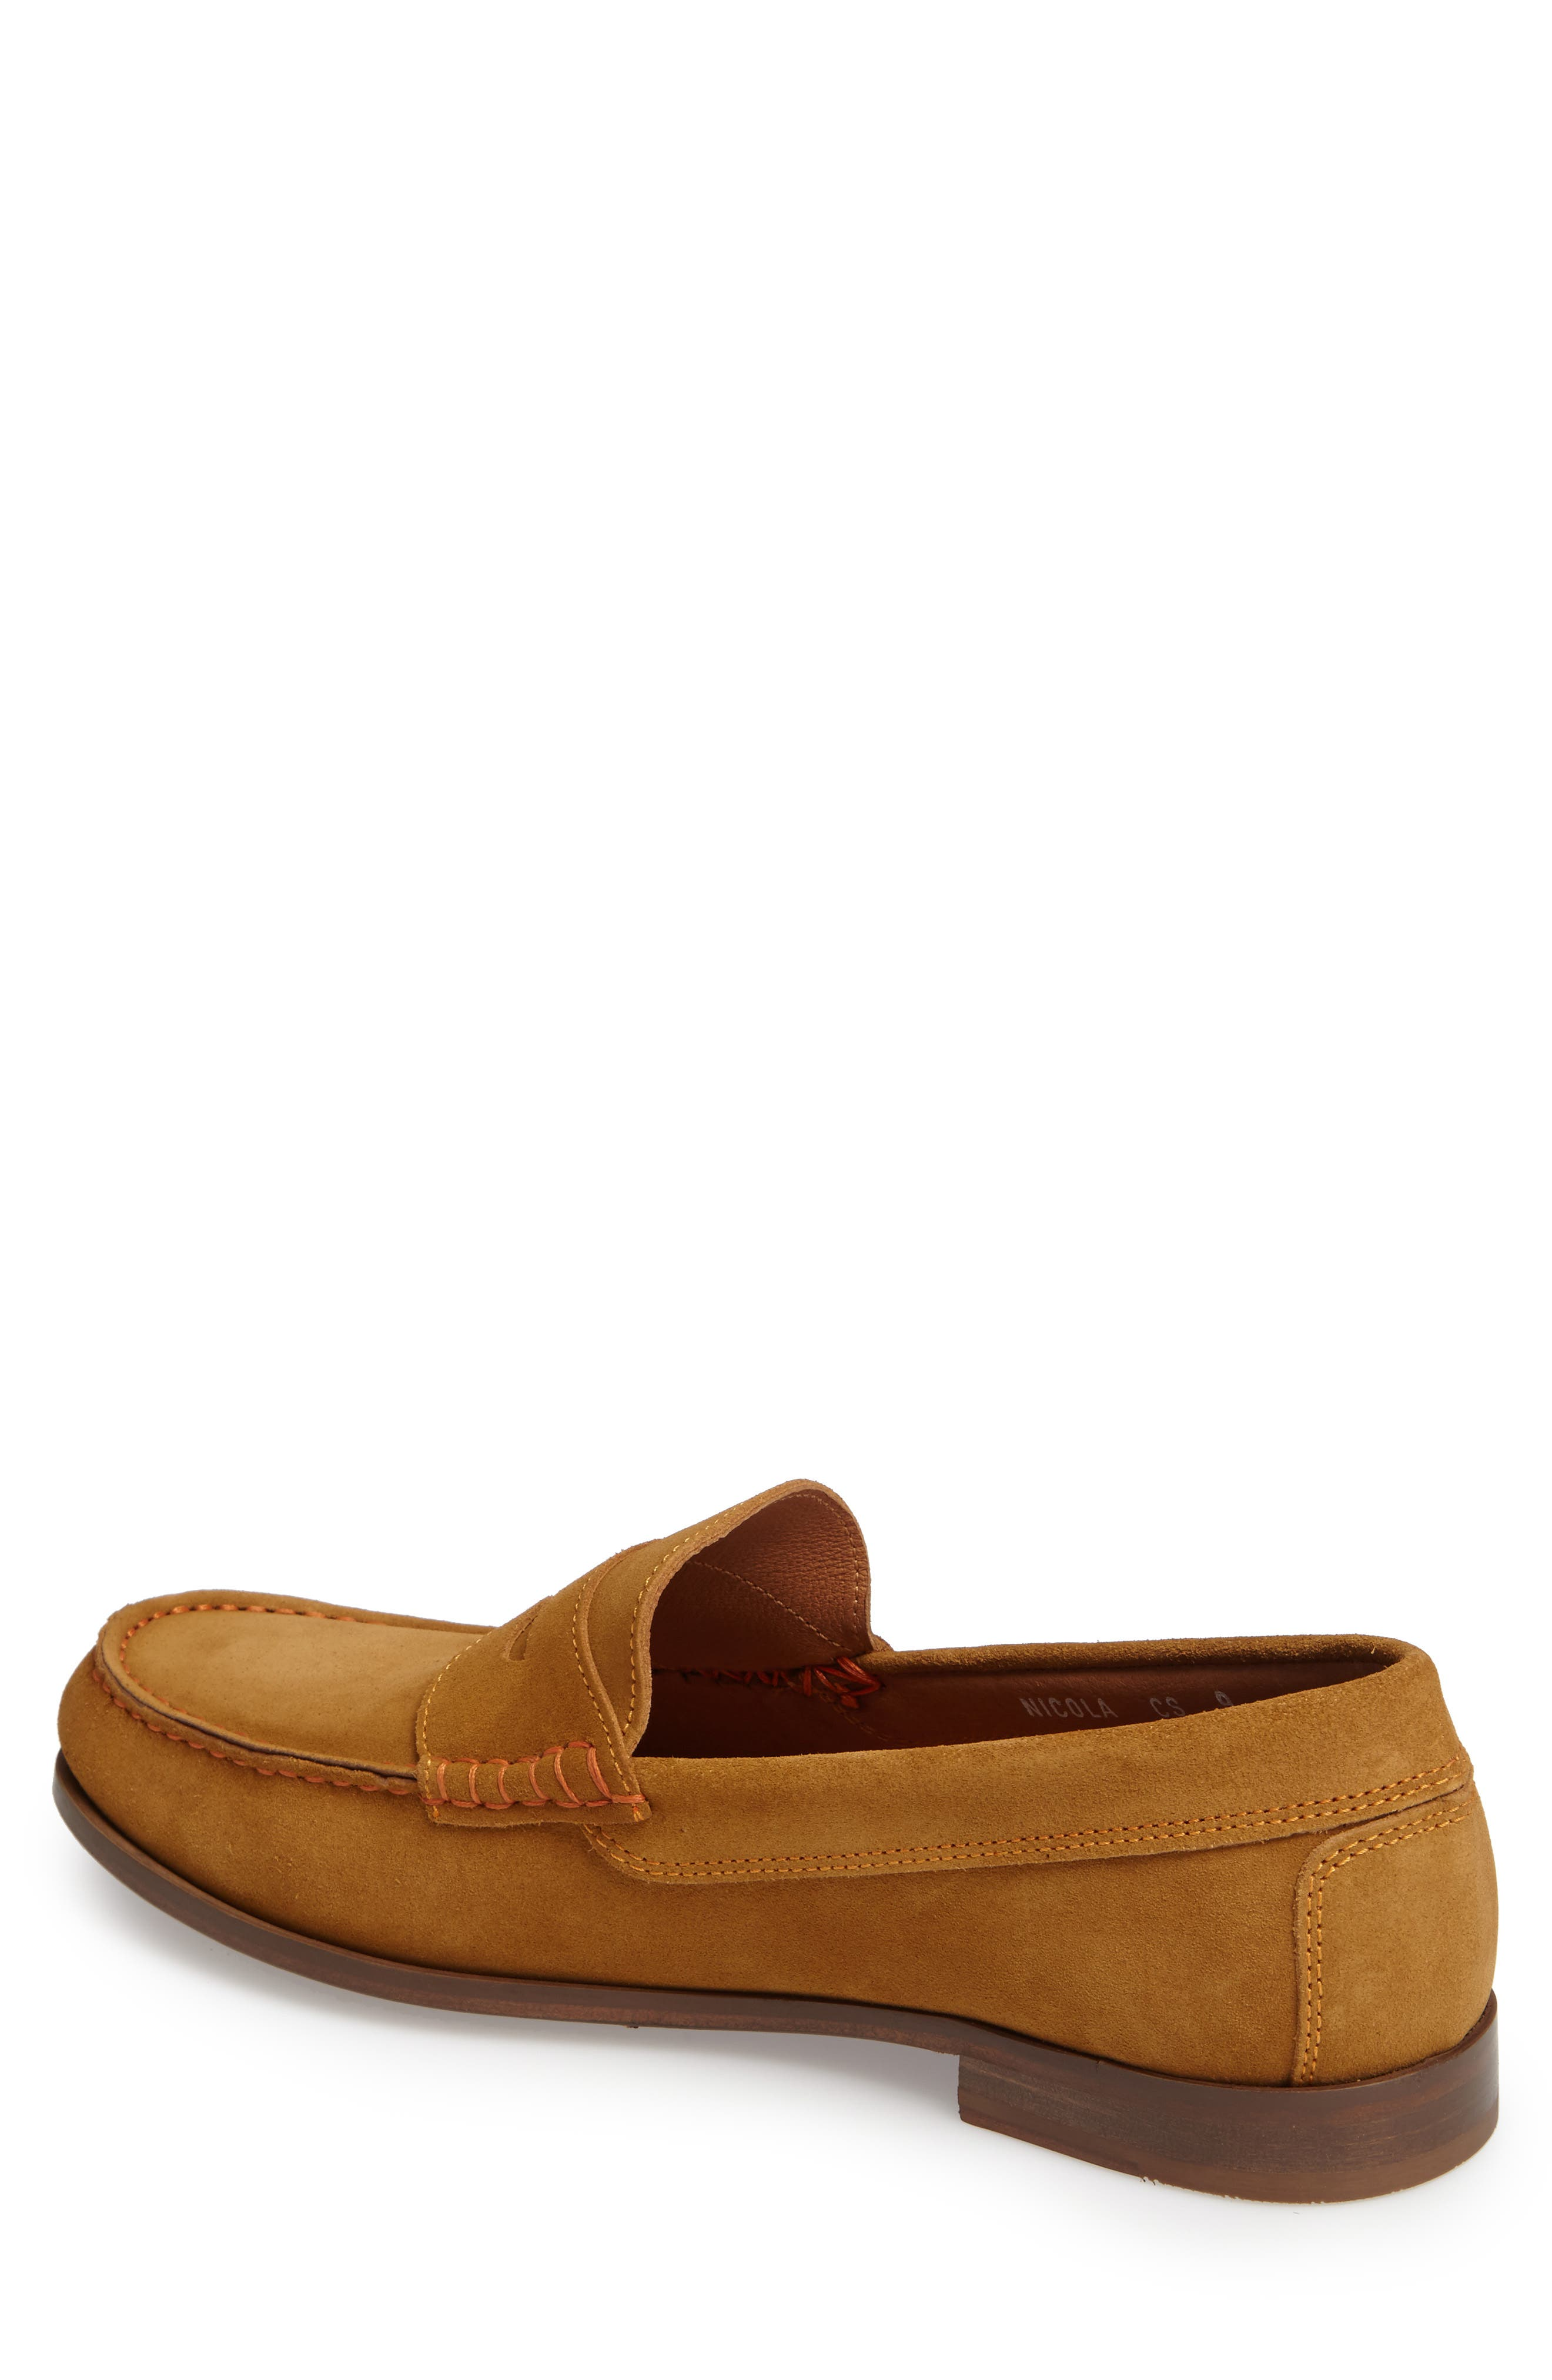 Nicola Penny Loafer,                             Alternate thumbnail 17, color,